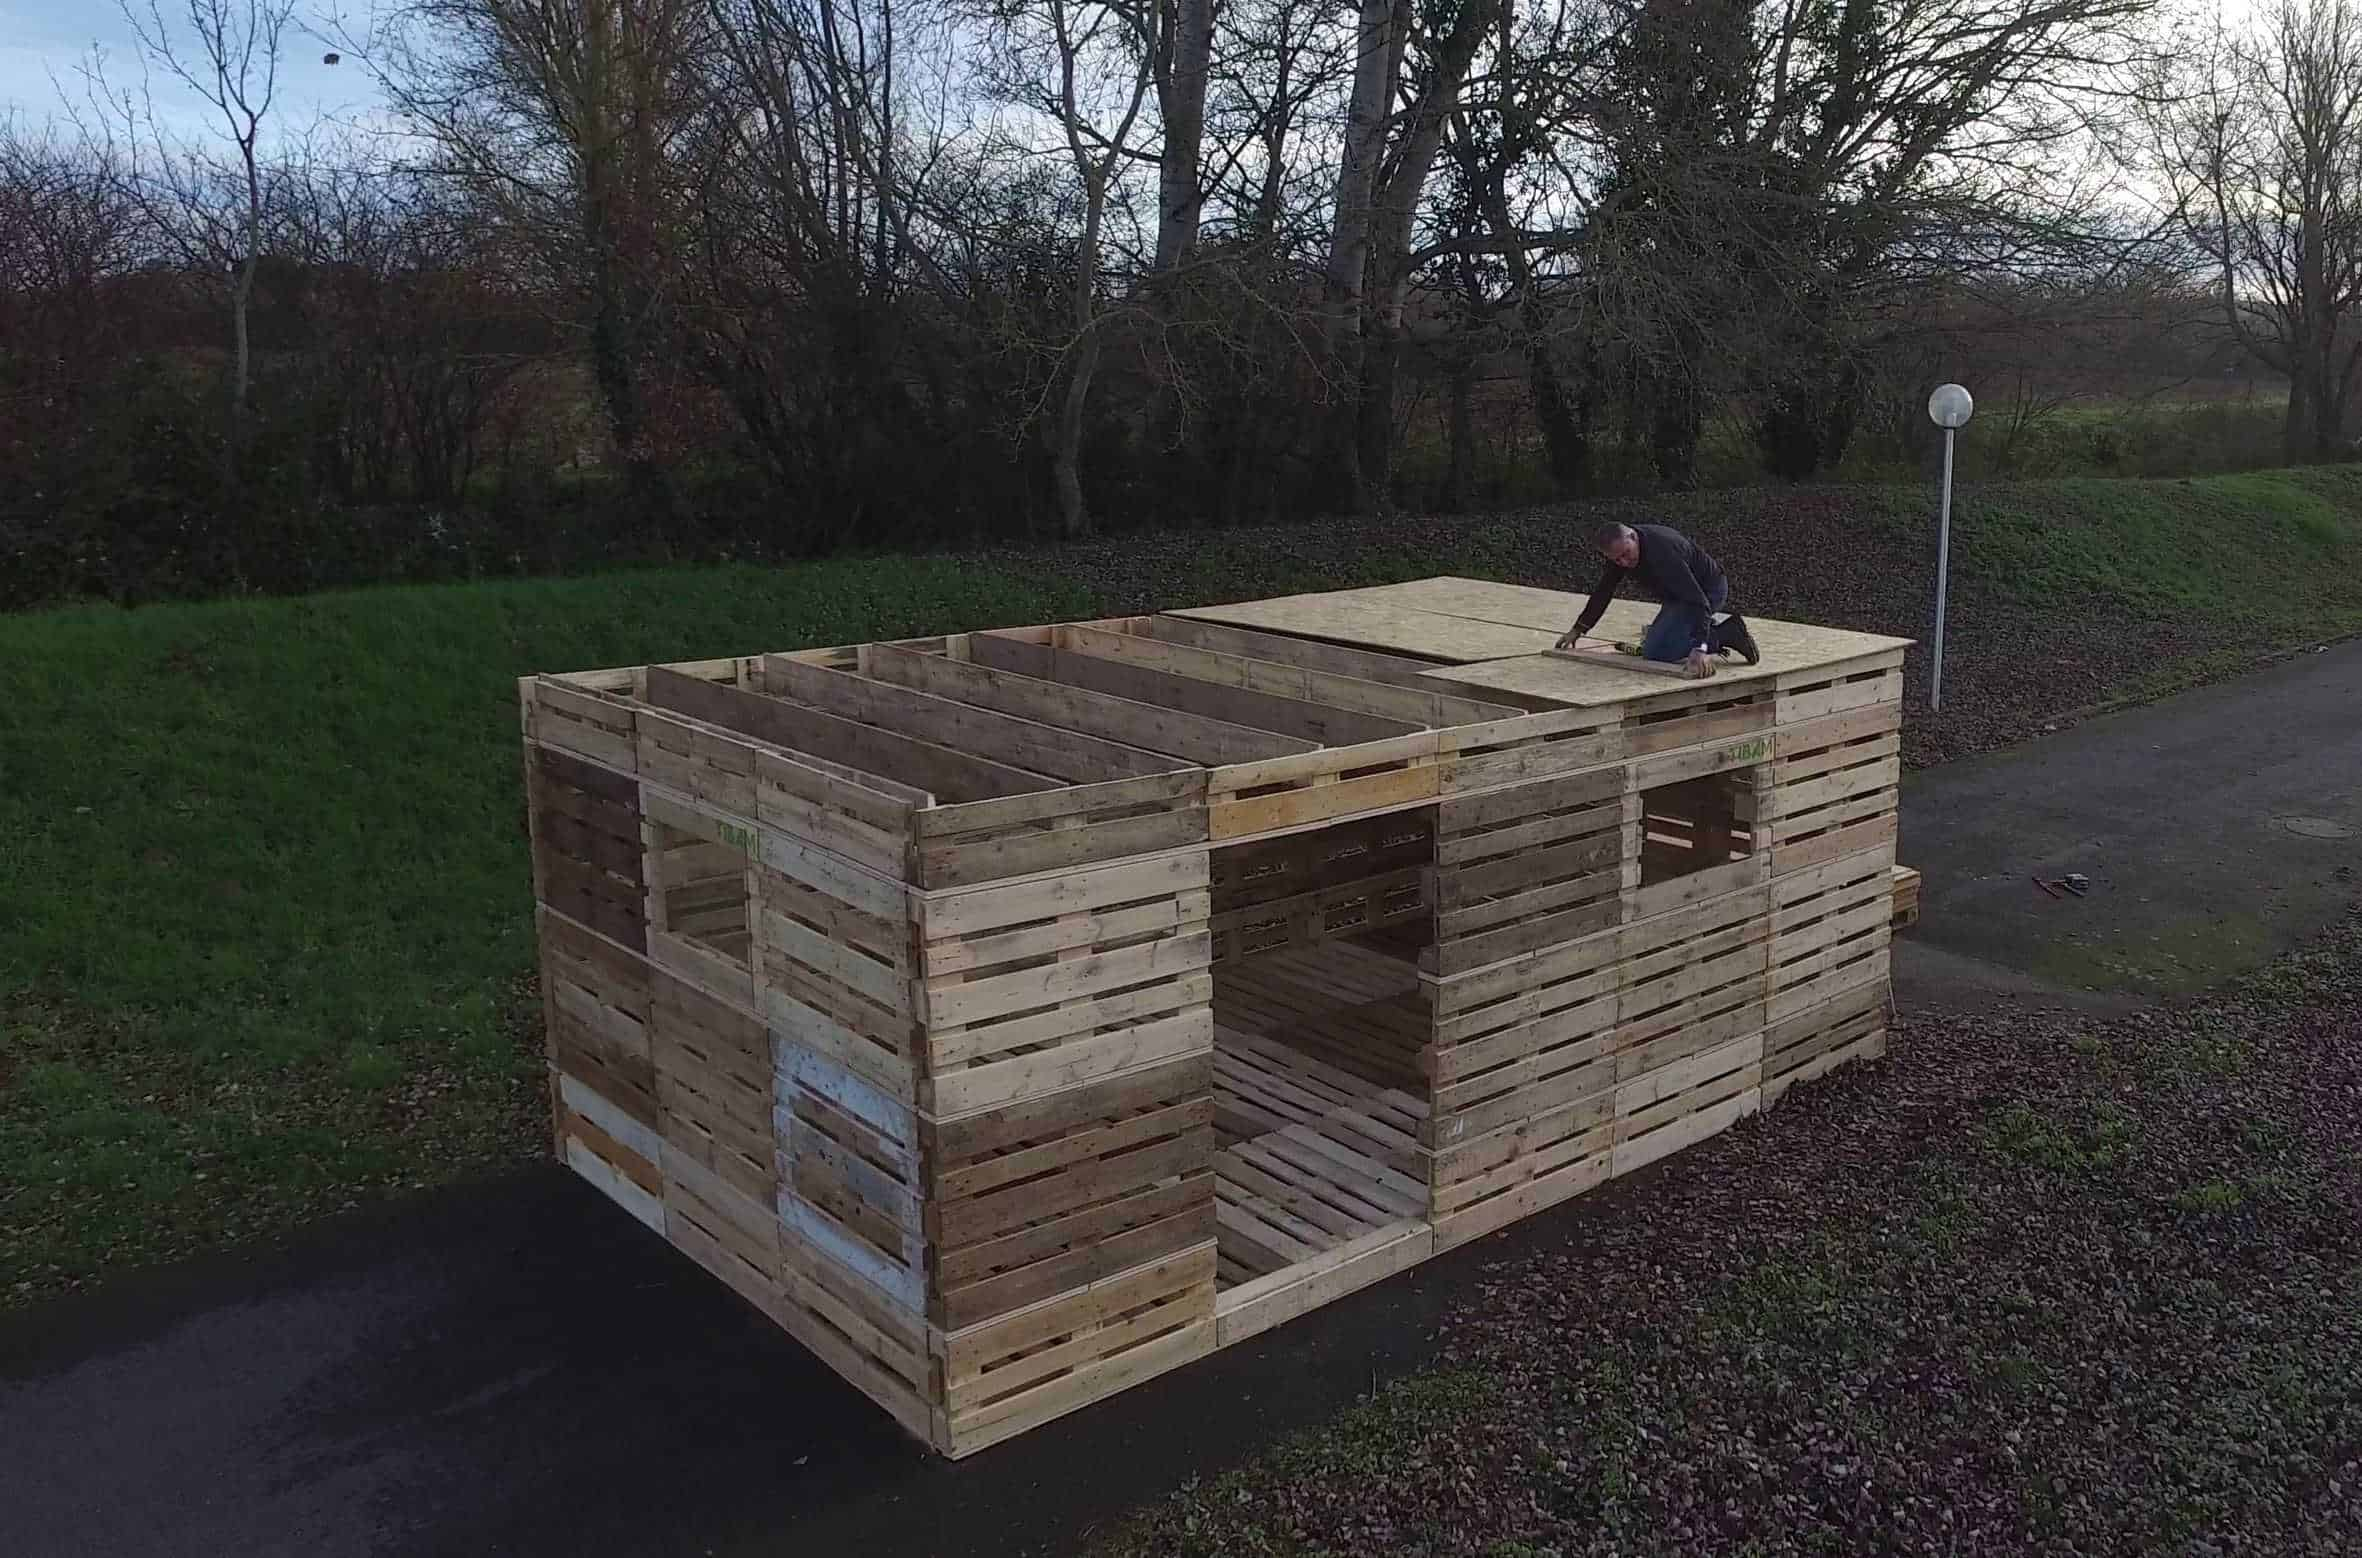 What If You Could Build a Shelter from Pallets in One Day ...